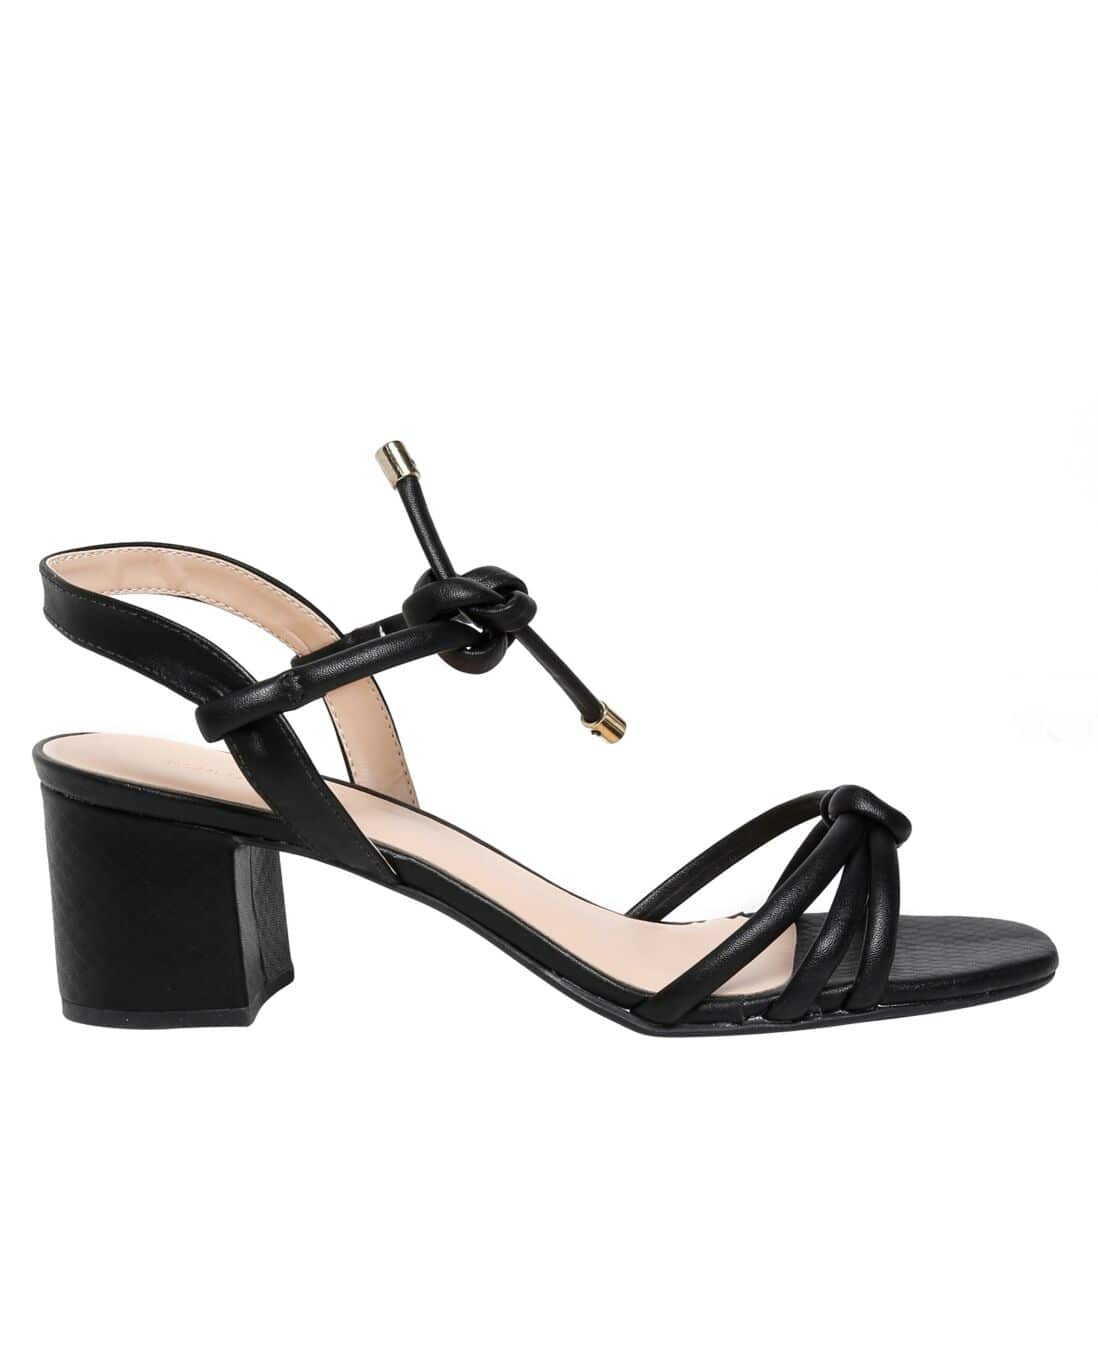 Sandália Baixa Lace Up Salto Bloco RCHLO Shoes - Preto